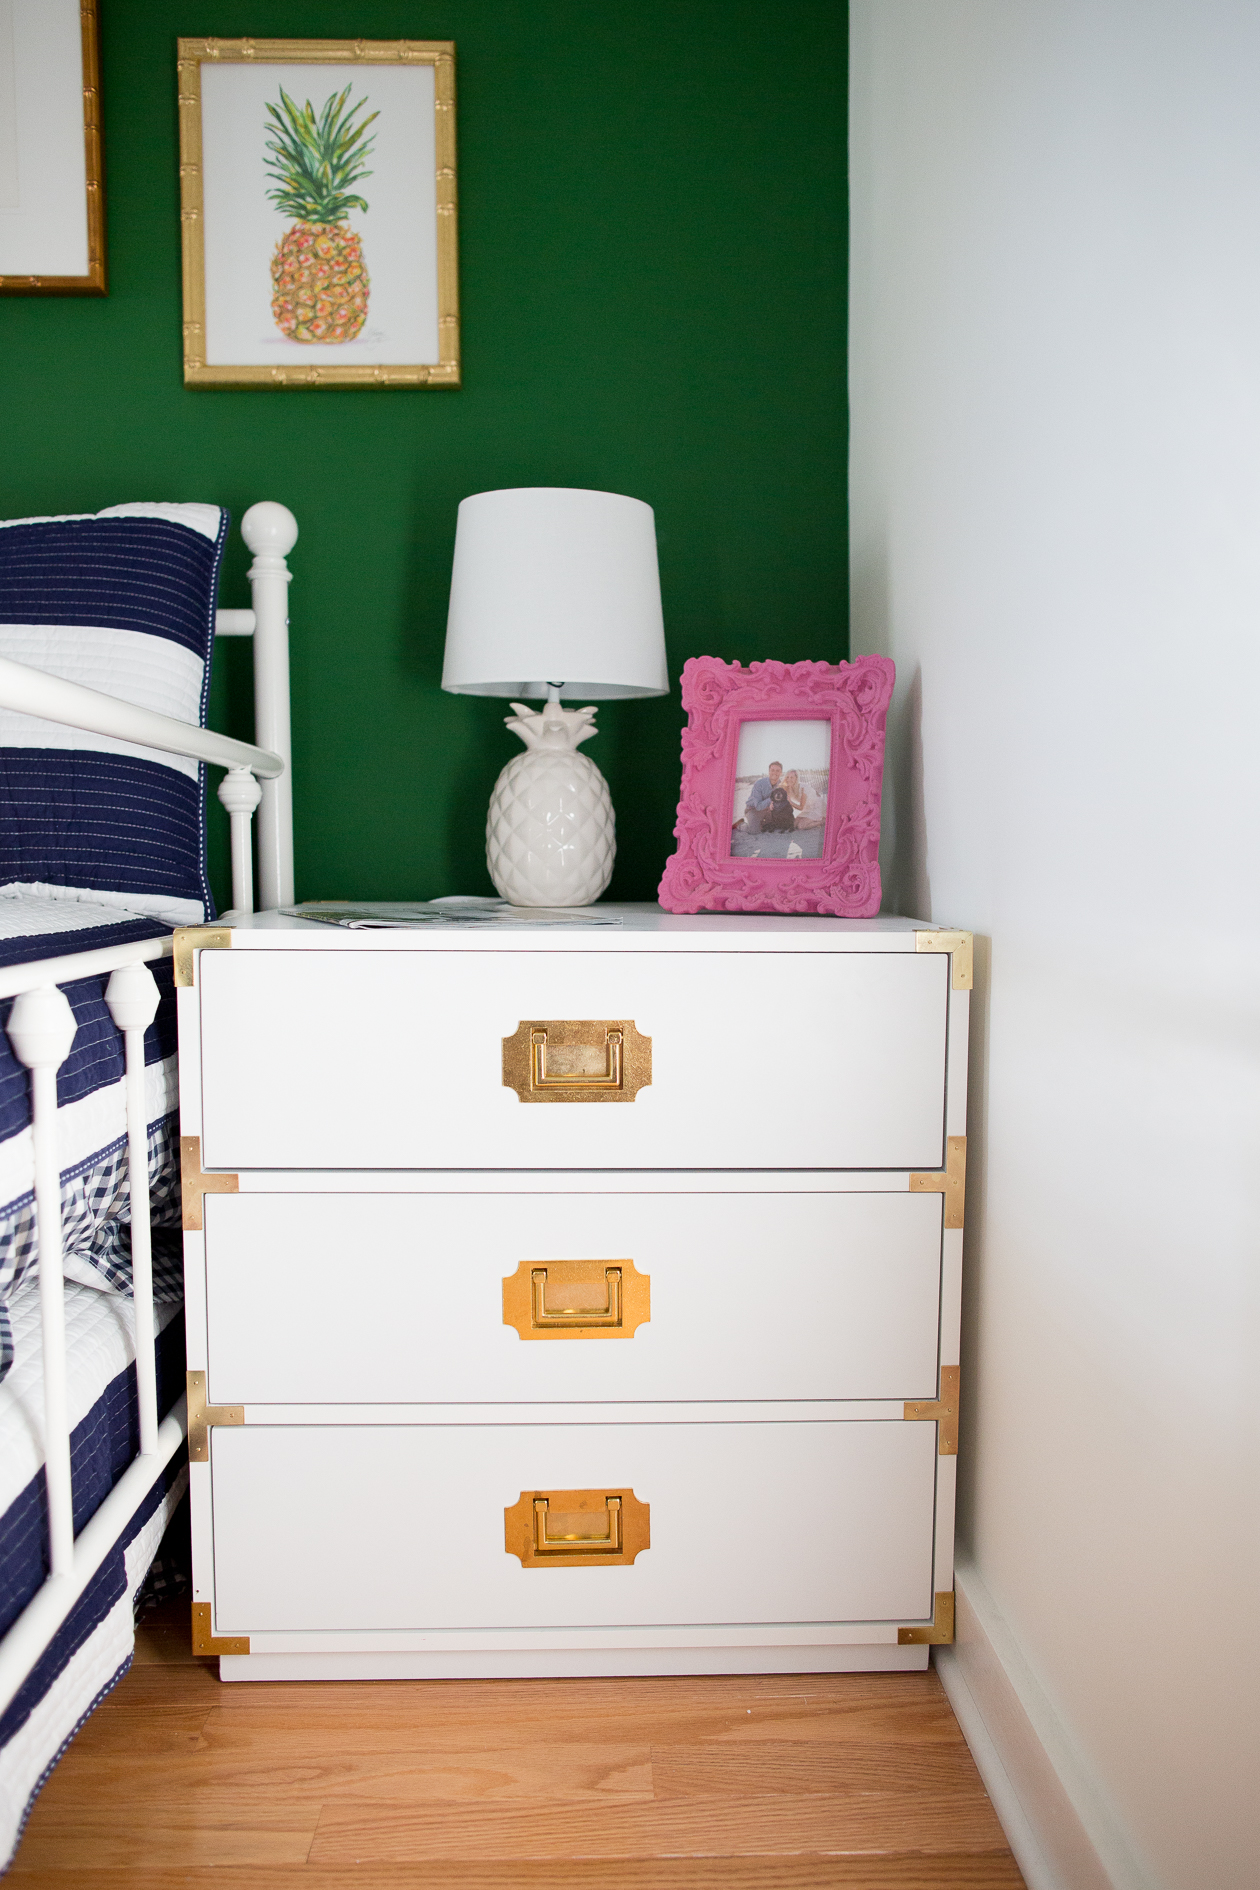 preppy-green-walls-gold-frames-9